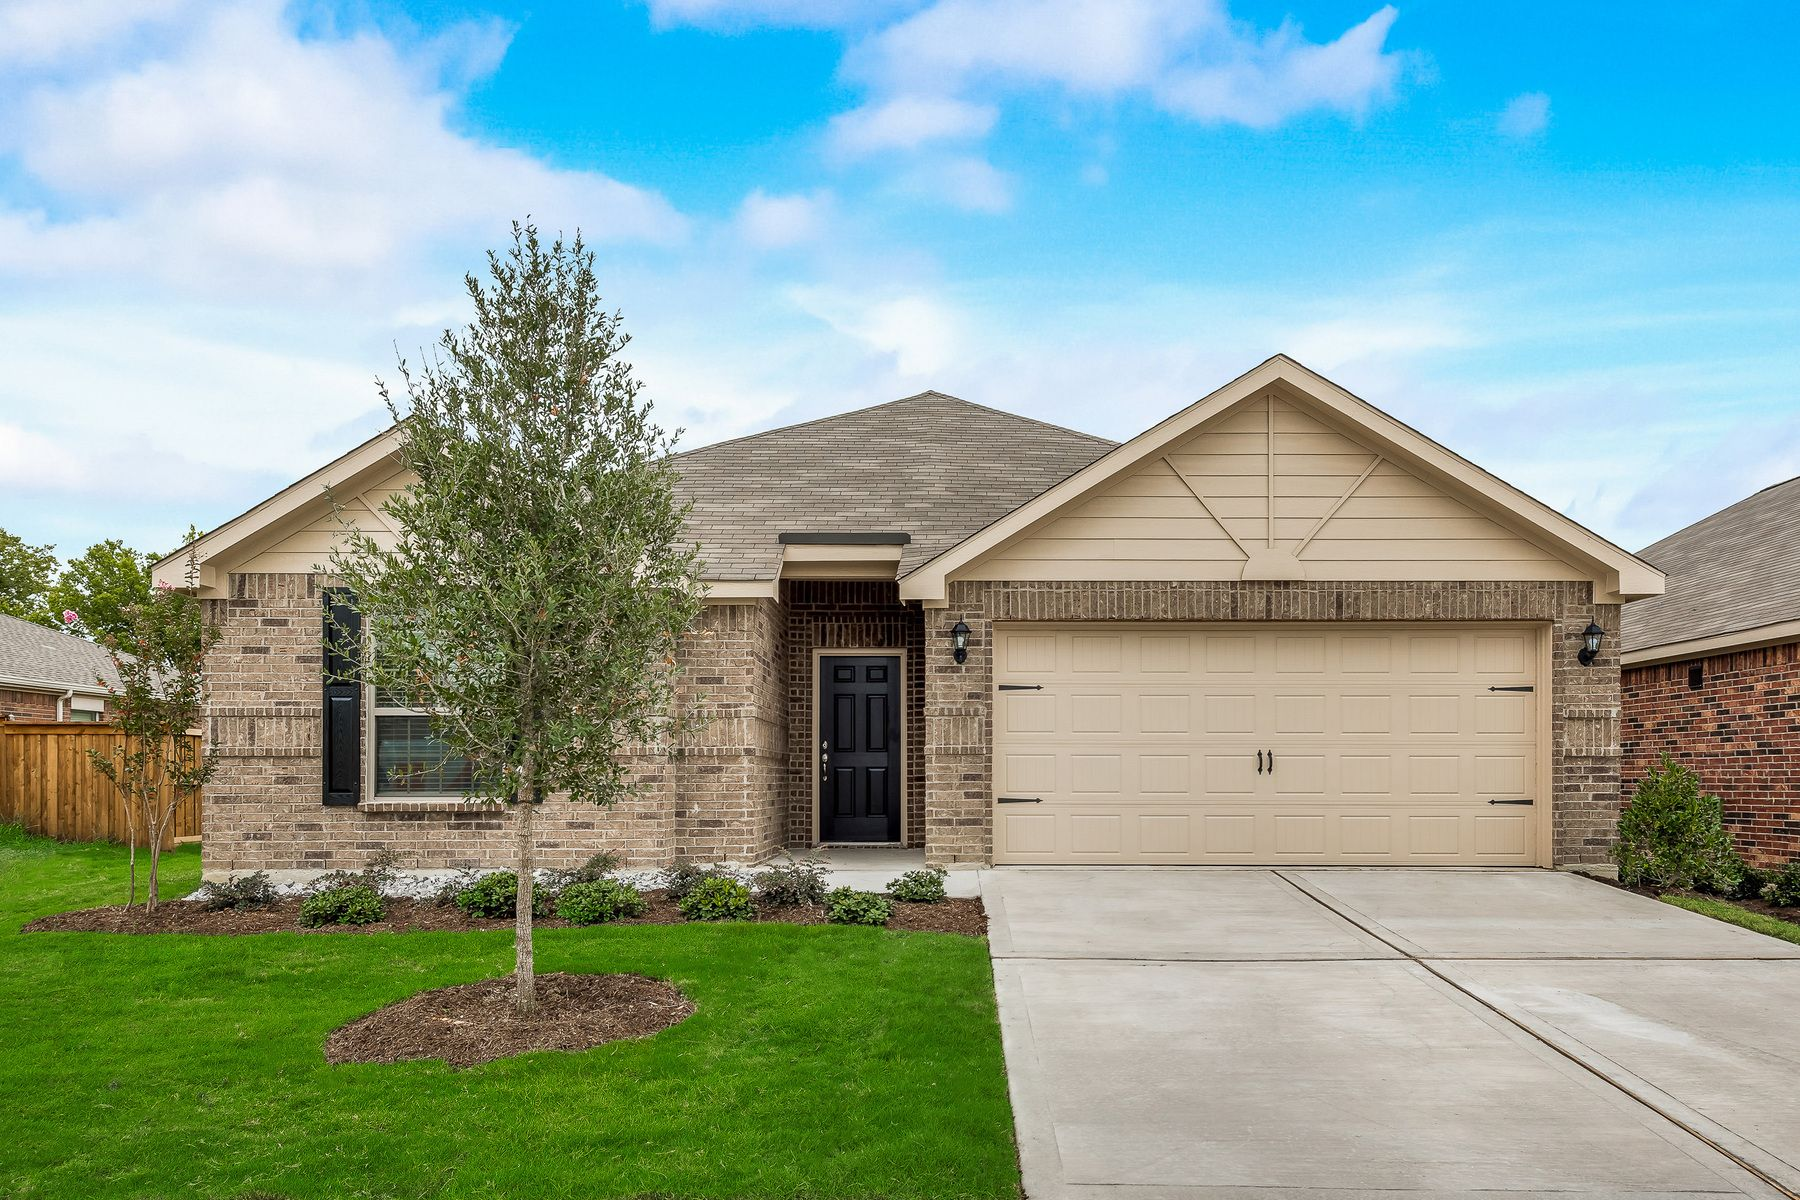 The Atchison by LGI Homes:The gorgeous Atchison plan by LGI Homes